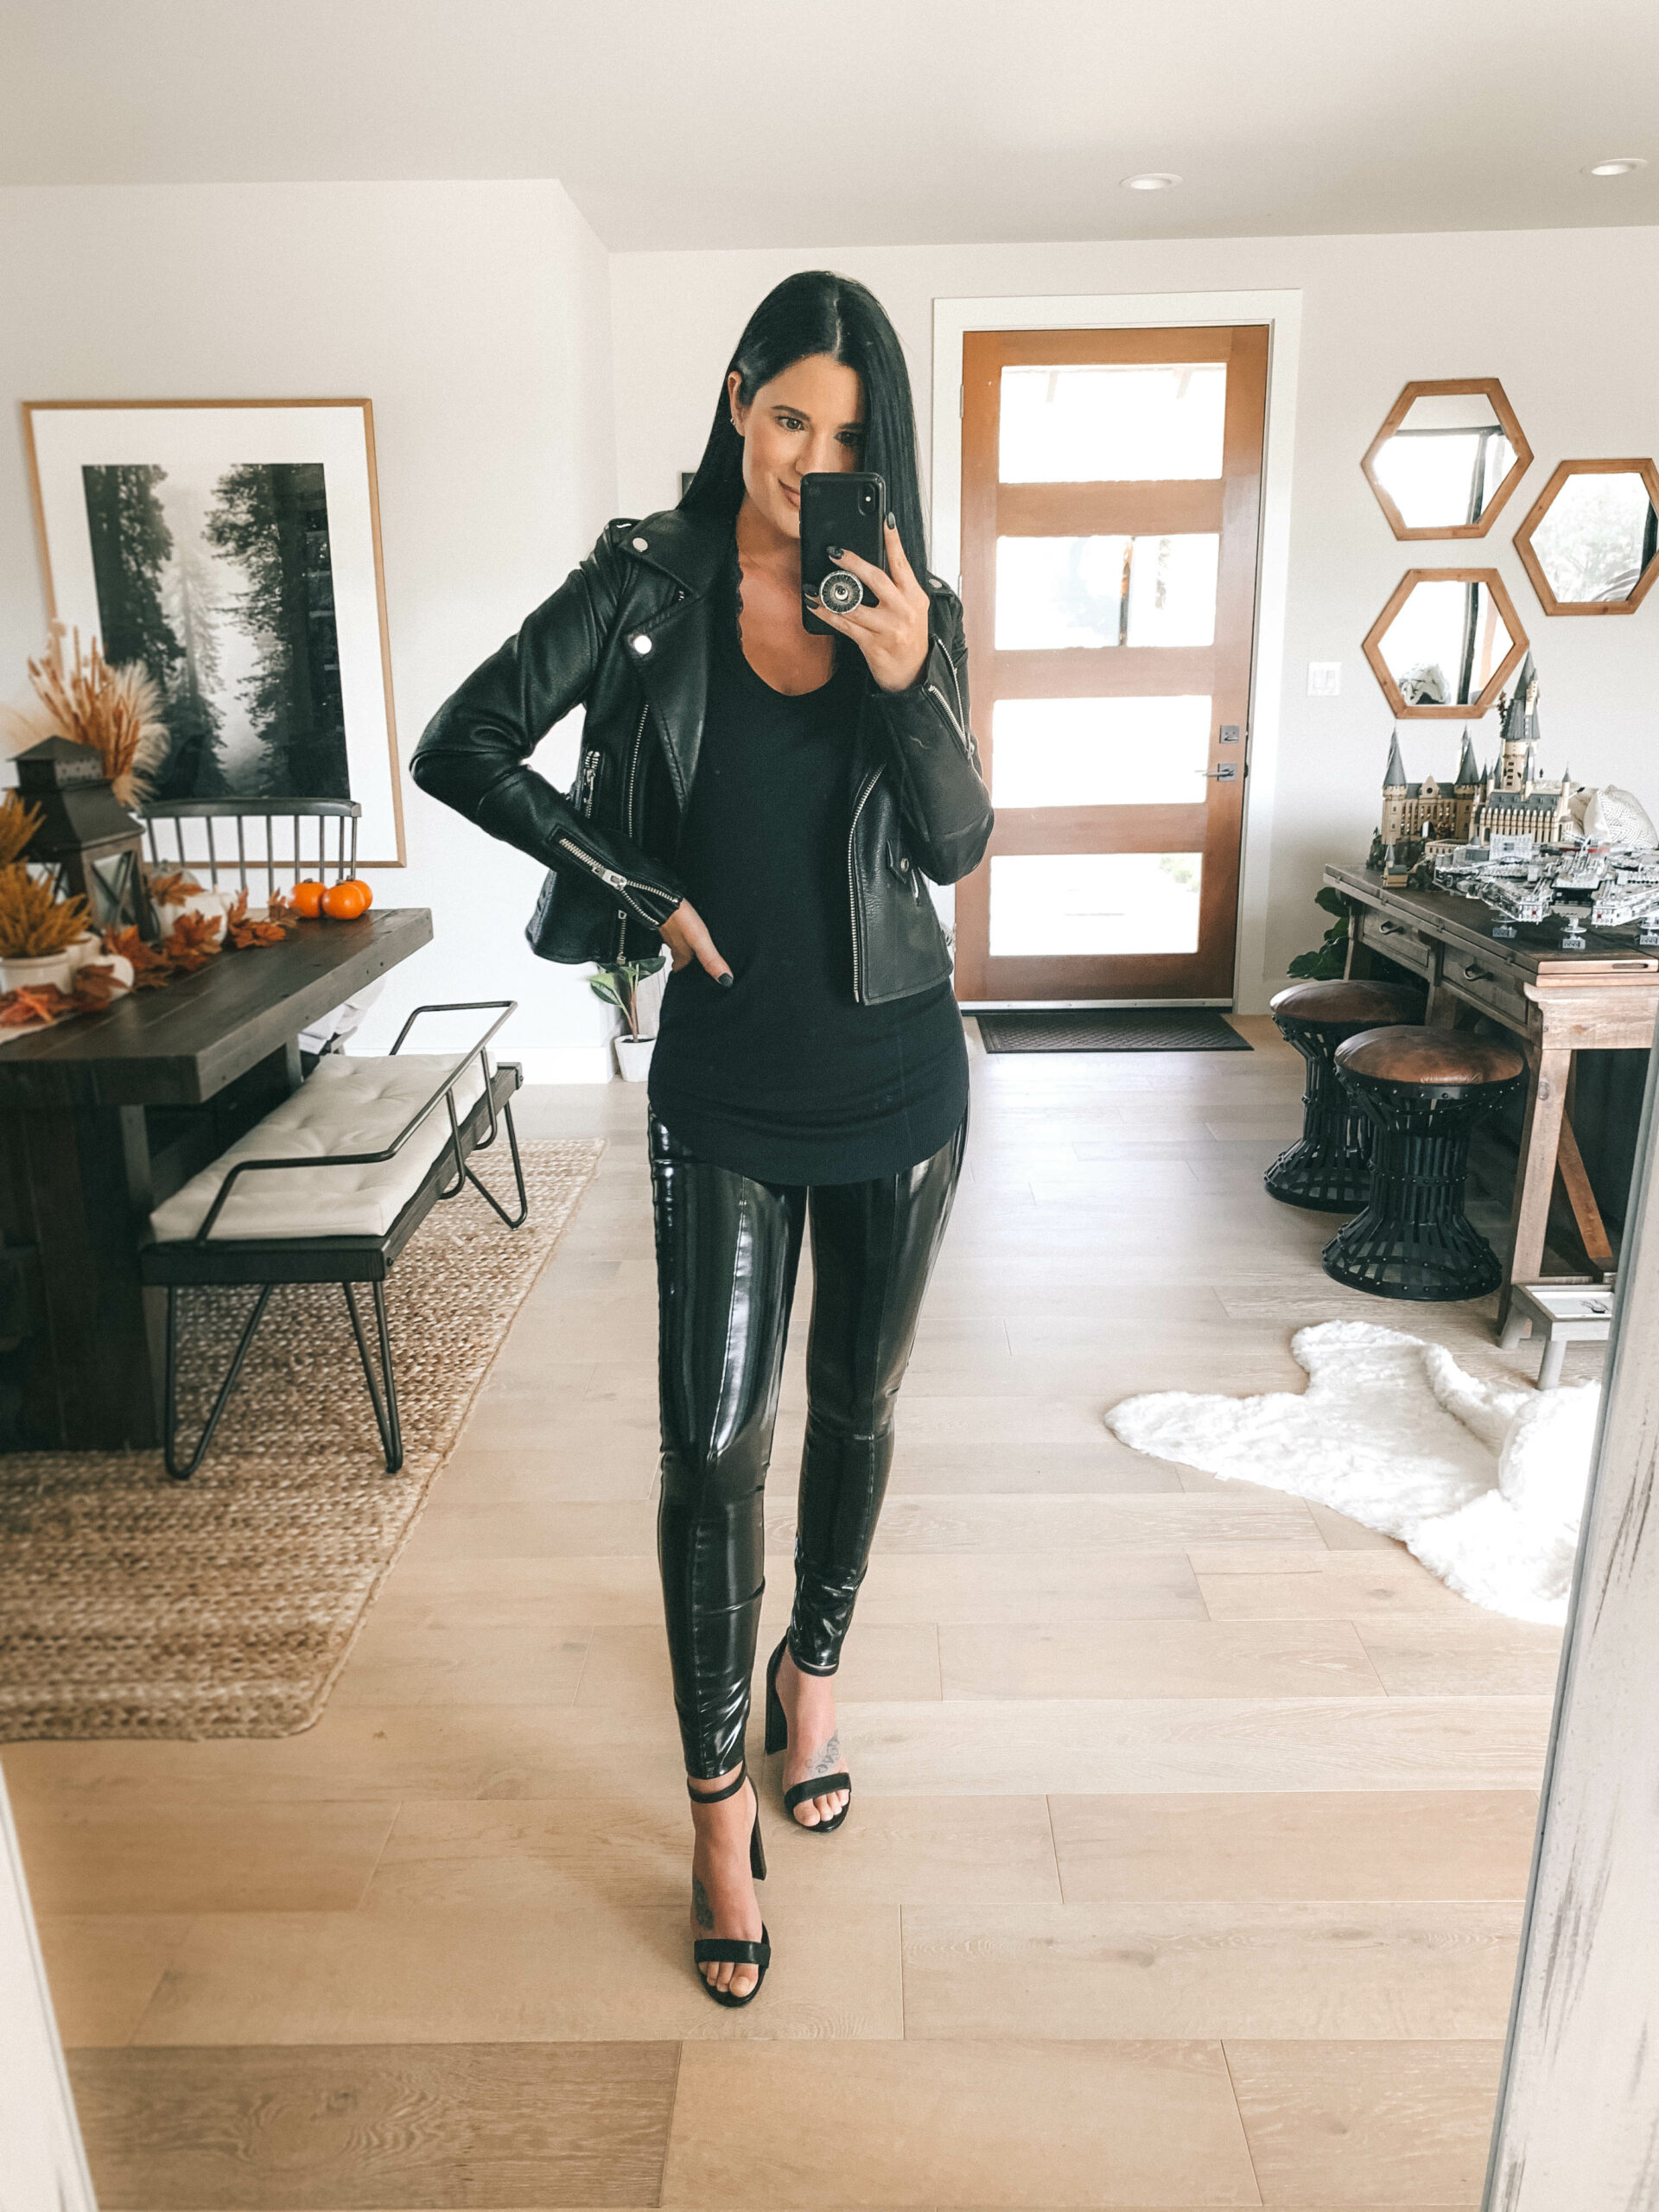 Patent Leather Leggings by popular Austin fashion blog, Dressed to Kill: image of a woman wearing a pair of Spanx Faux Patent Leather Leggings with black block heel sandals, a black leather jacket, and a black t-shirt.